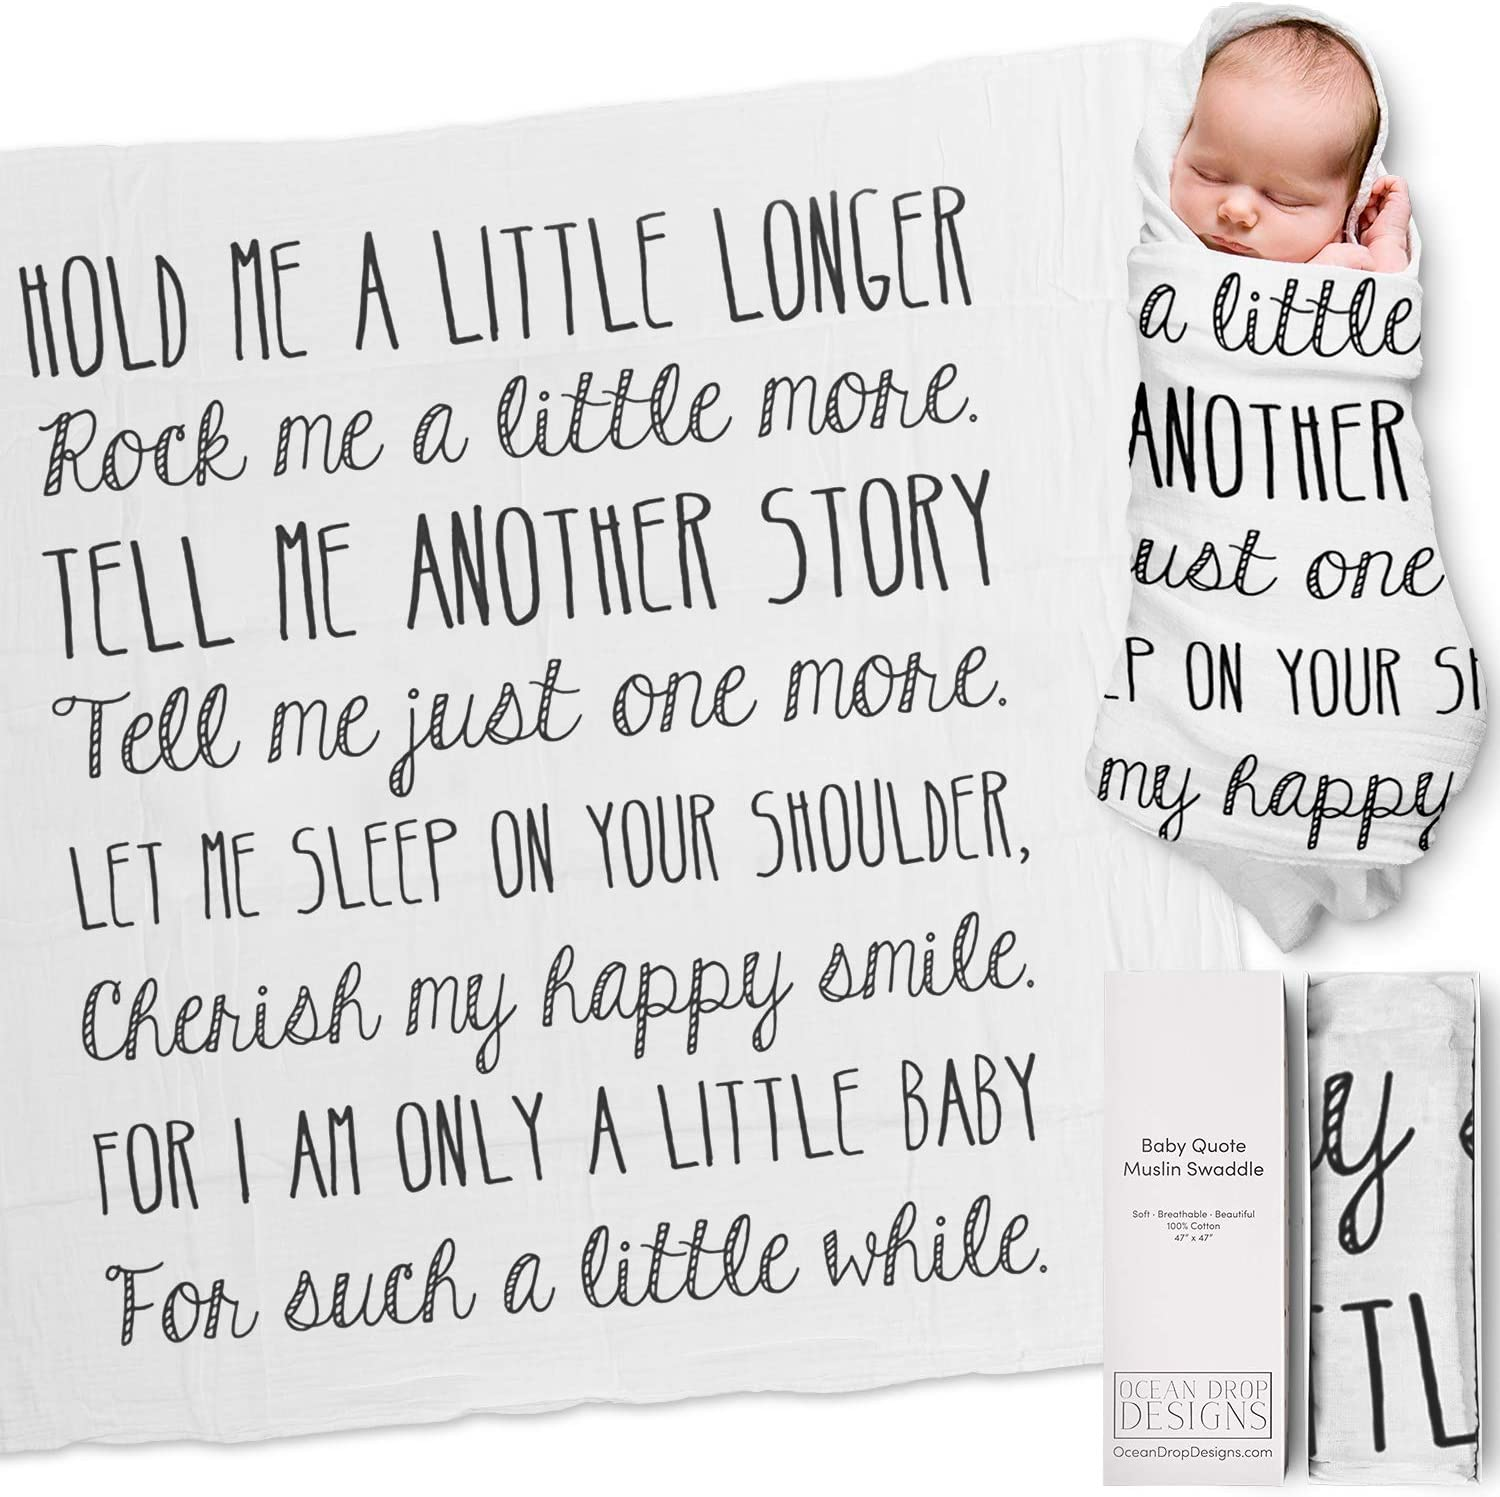 Ocean Drop Designs Muslin Swaddle Blanket withHold Me A Little Longer Quote Goddaughter and Godson Gifts Christening Gift for Girls and Boys Baptism Gift for Boys and Baby Girls Newborn Swaddle